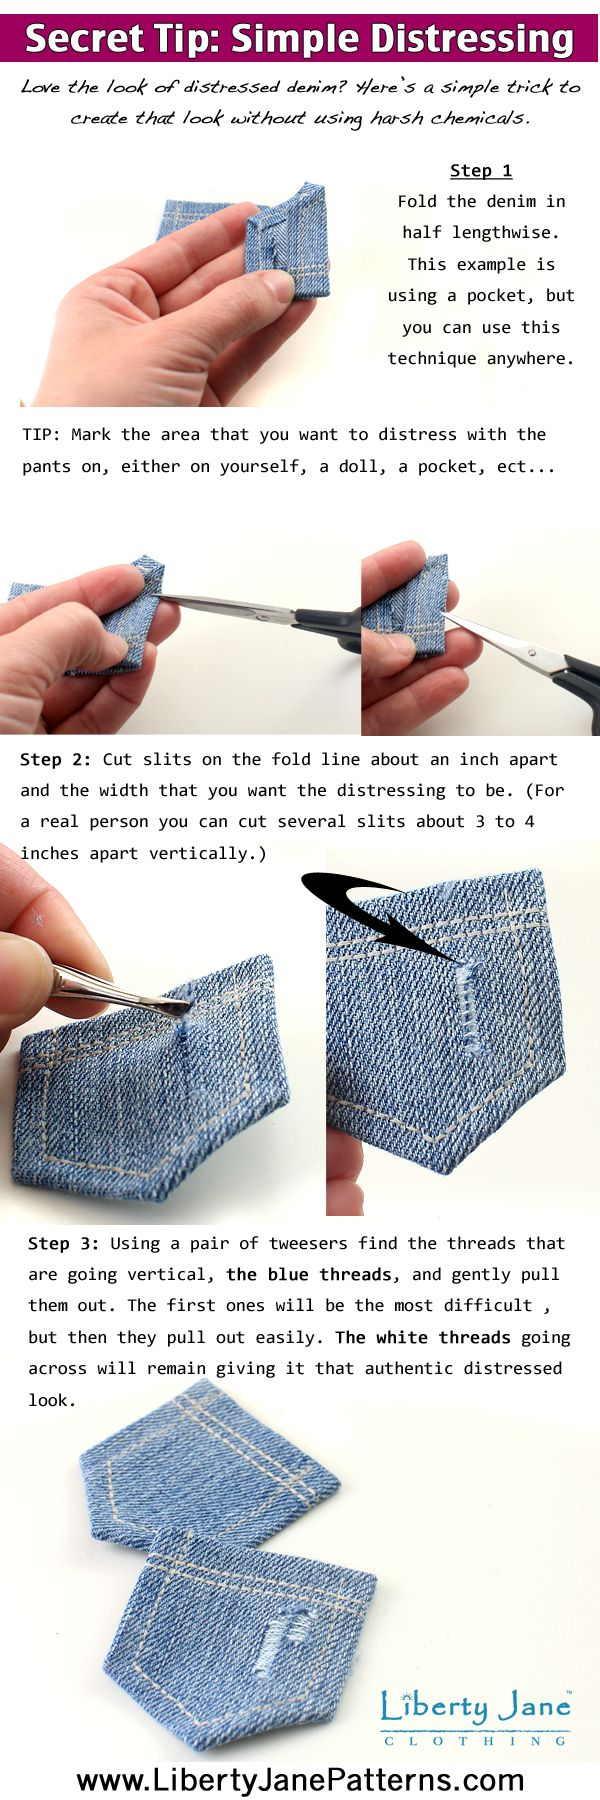 Simple technique to distress denim without harsh chemicals! DIY Step by Step Tutorial (Tip for sewing the back pocket is also on this board)